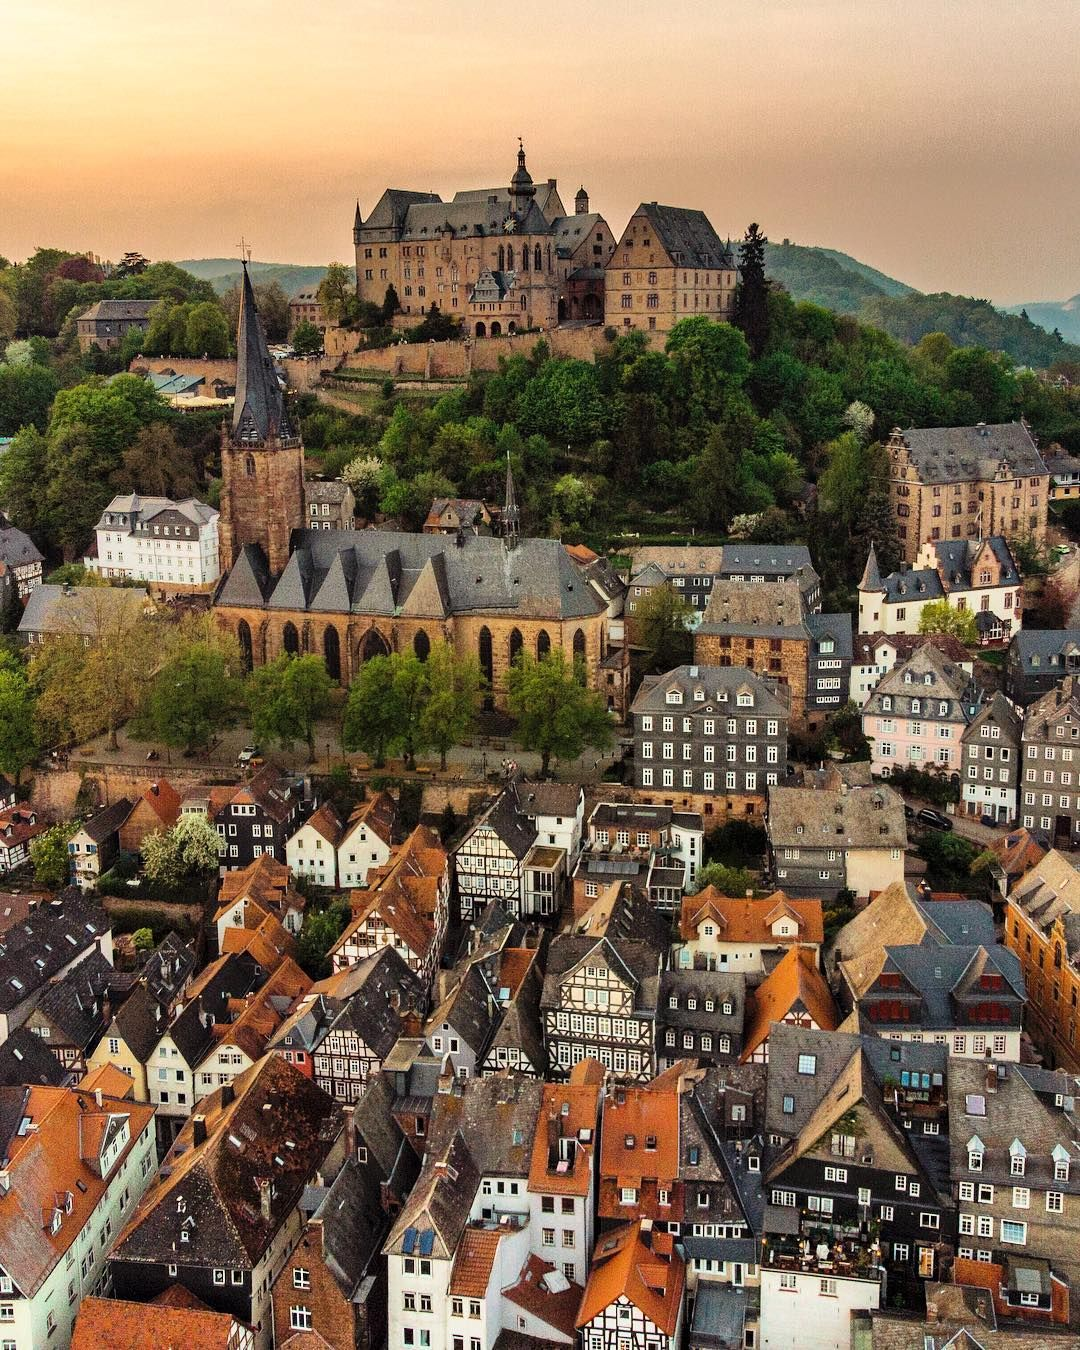 16 Of The Most Instagrammable Places In Germany Who To Follow Instagrammable Places Medieval Germany Germany Castles